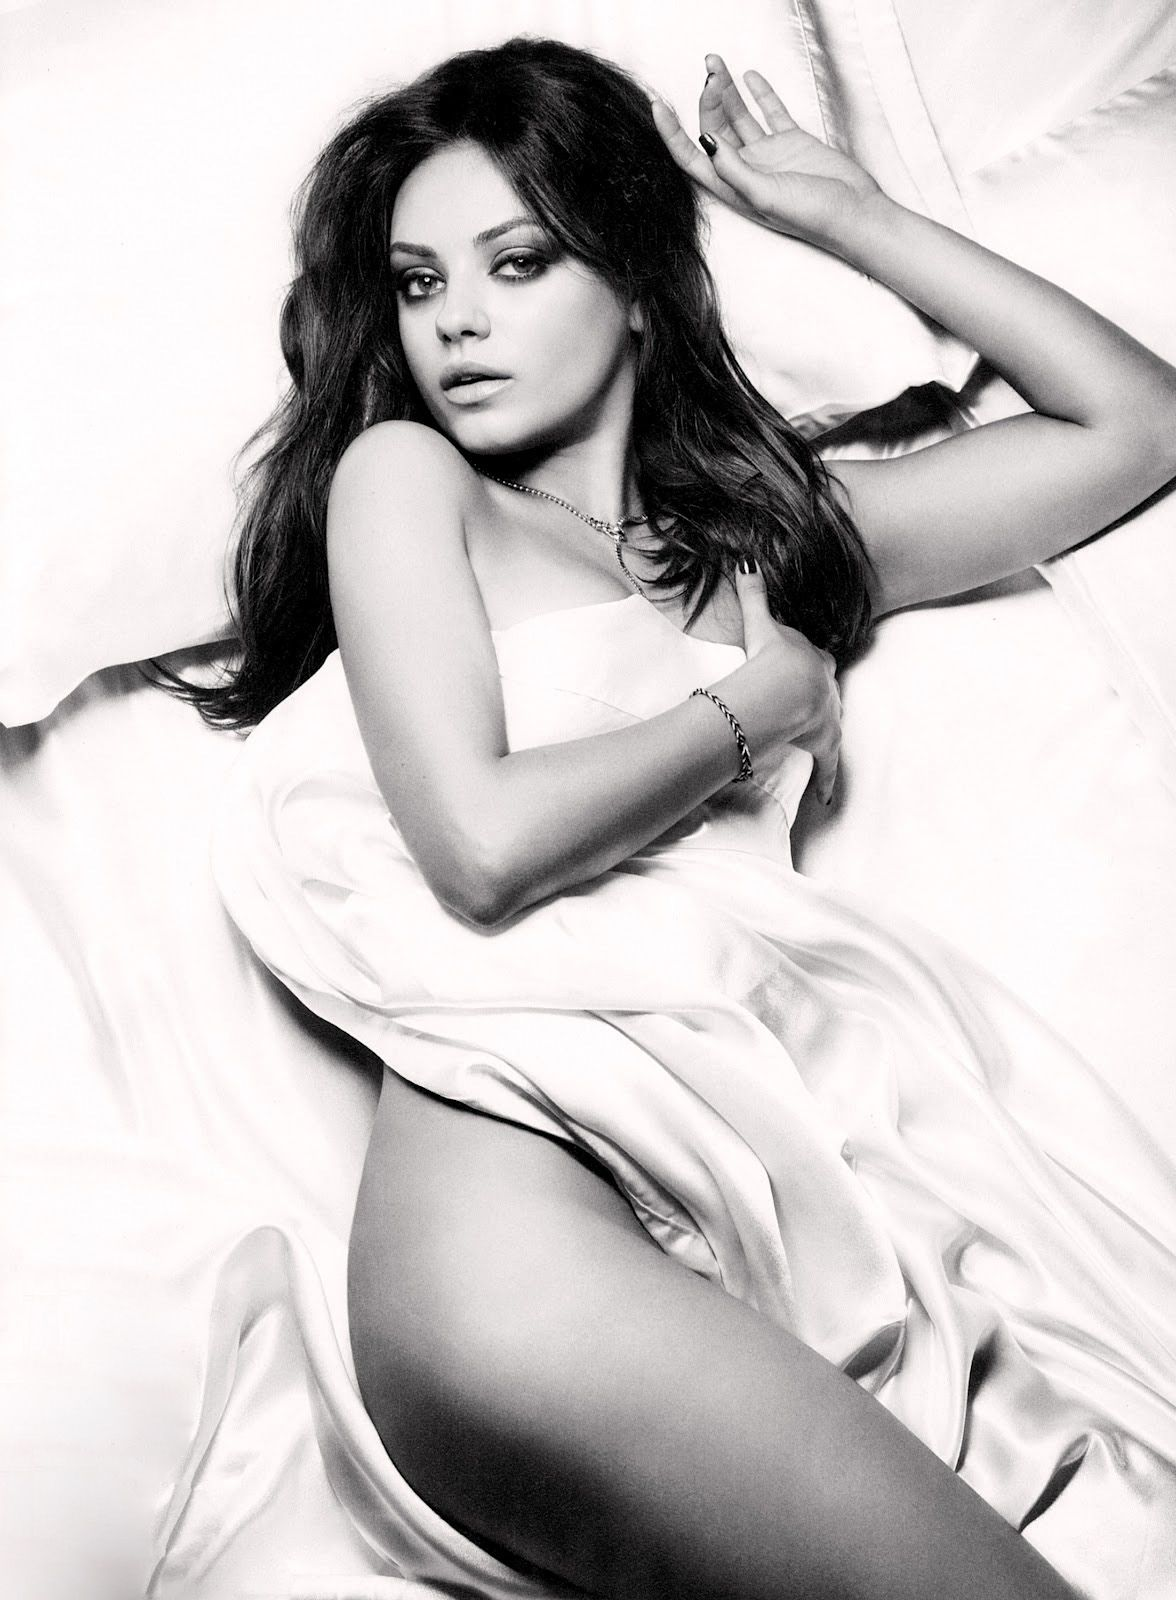 mila-kunis-esquire-magazine-november-2012-02-435x580